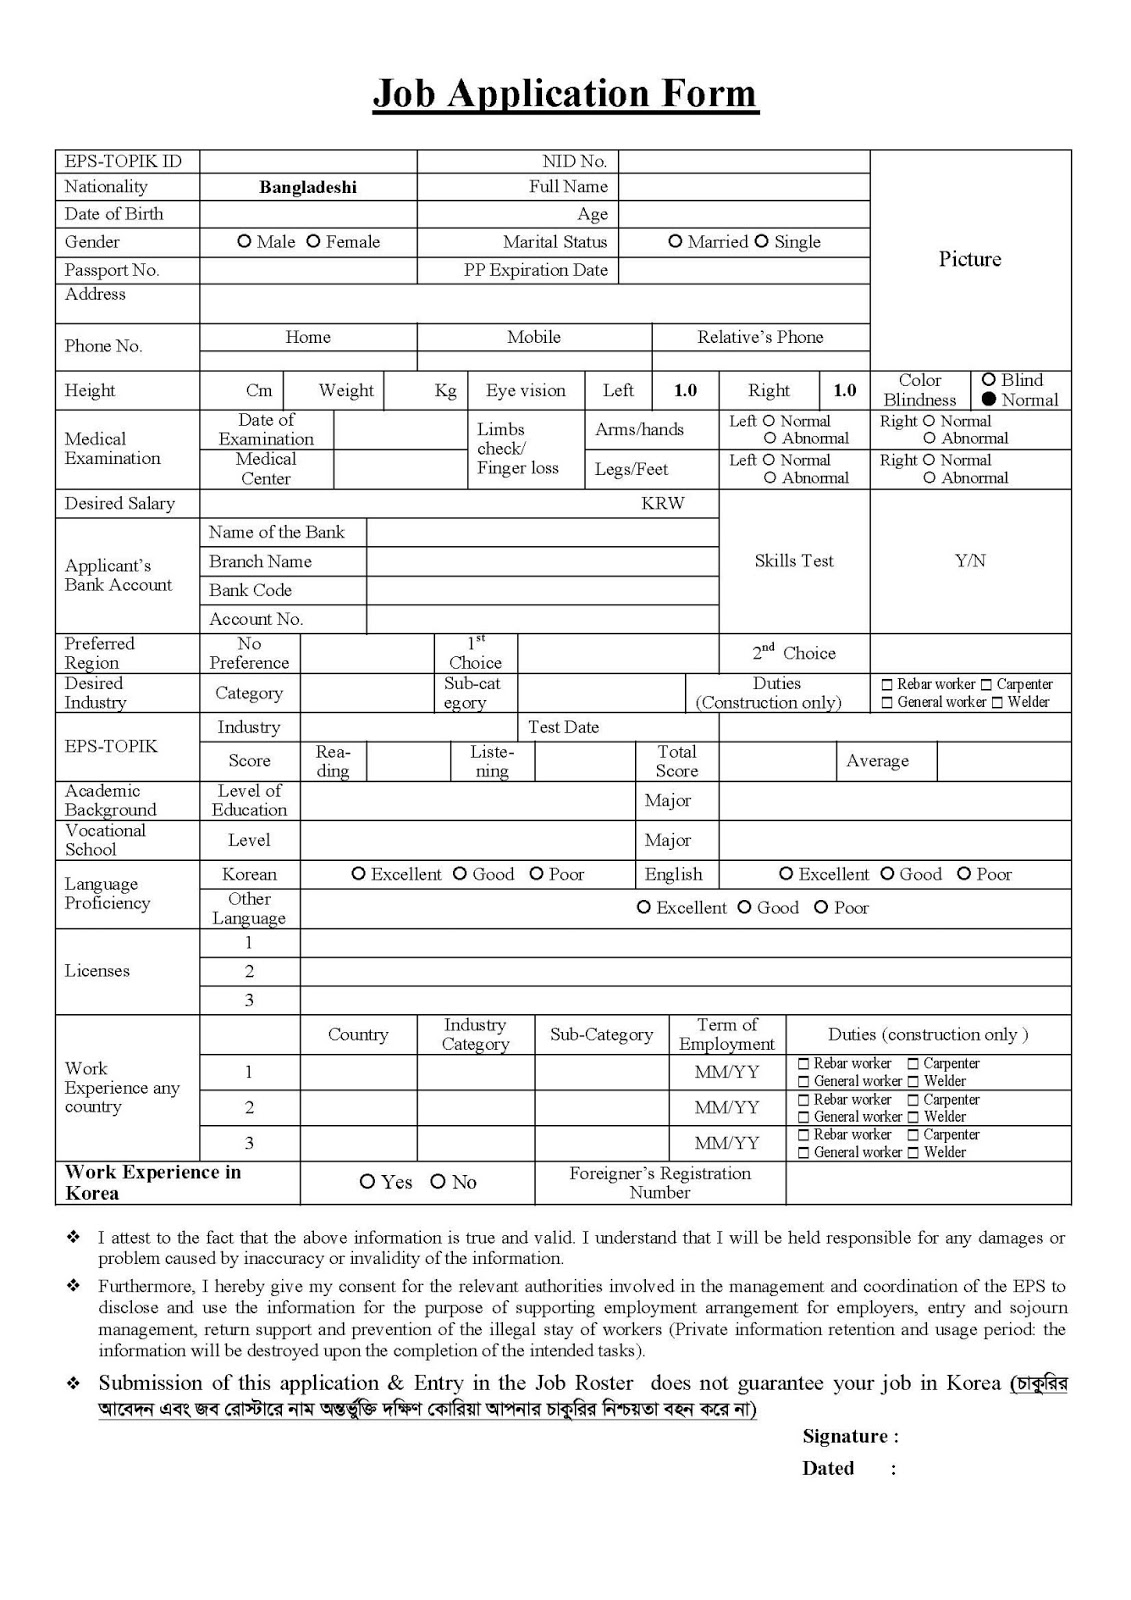 EPS-TOPIK Korean Information: Job Application form and other ...